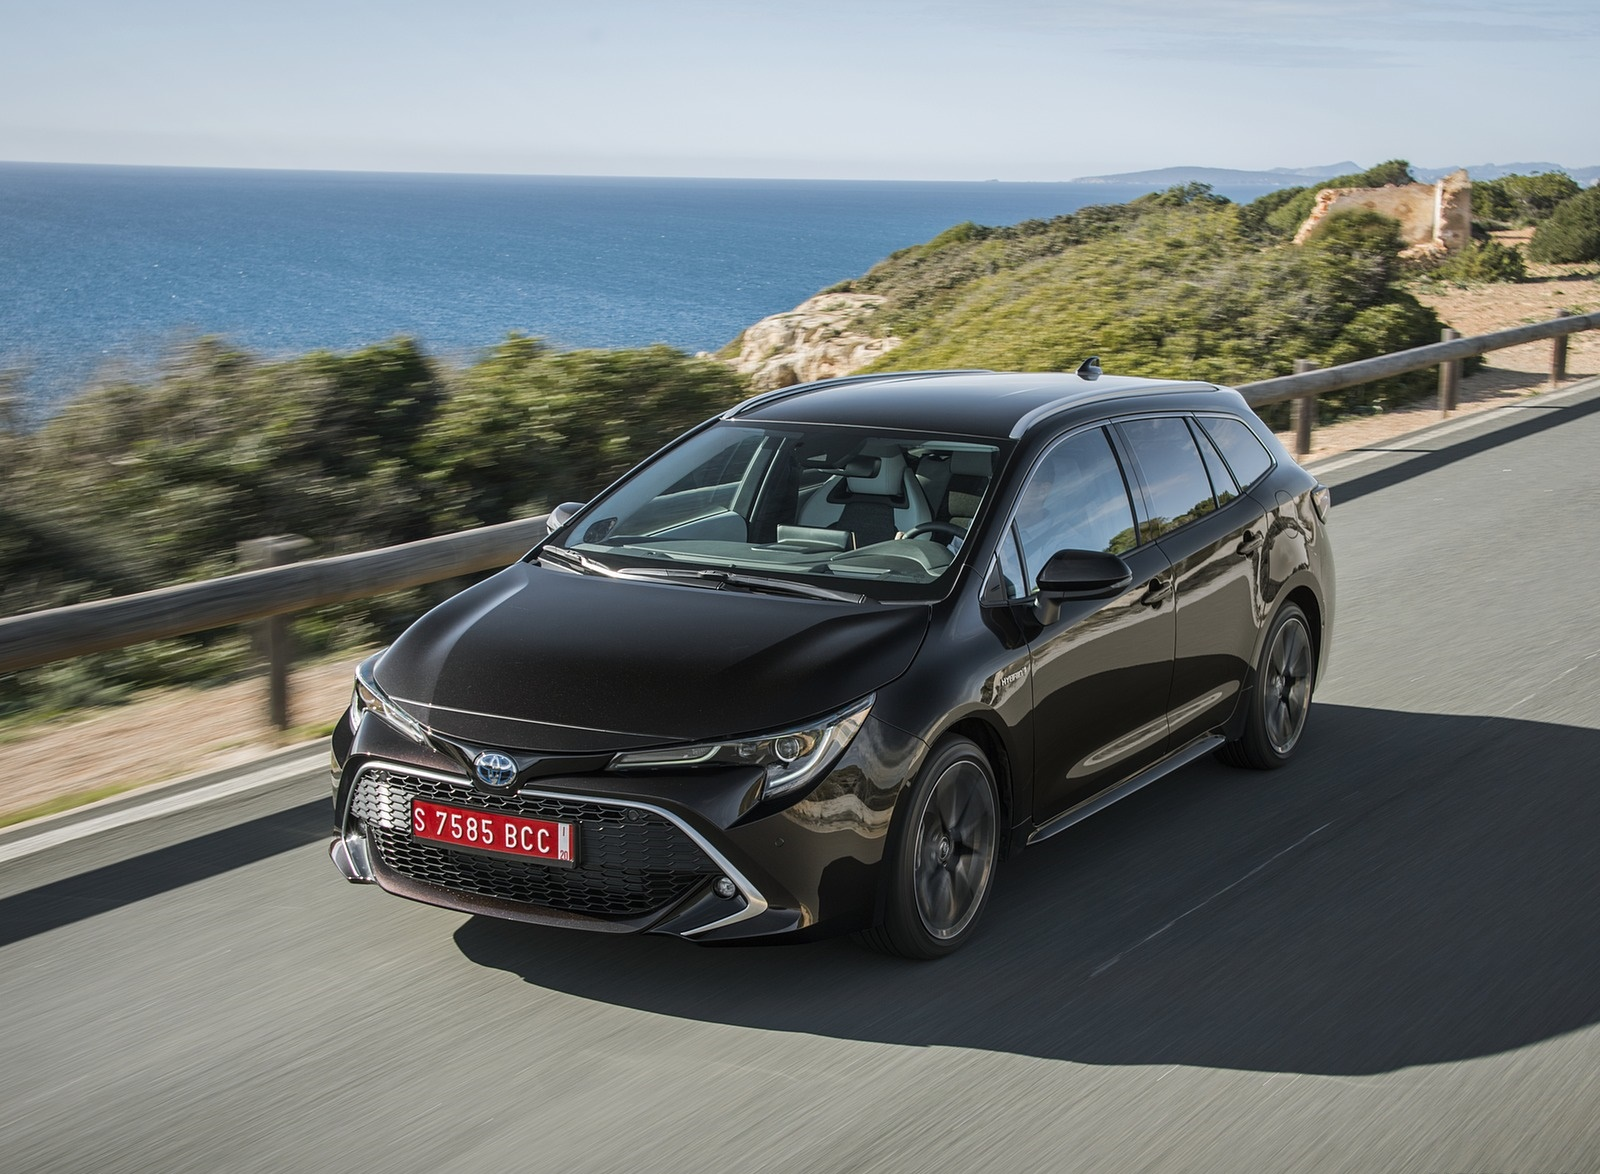 2019 Toyota Corolla Touring Sports 2.0L Brown (EU-Spec) Front Three-Quarter Wallpapers (8)